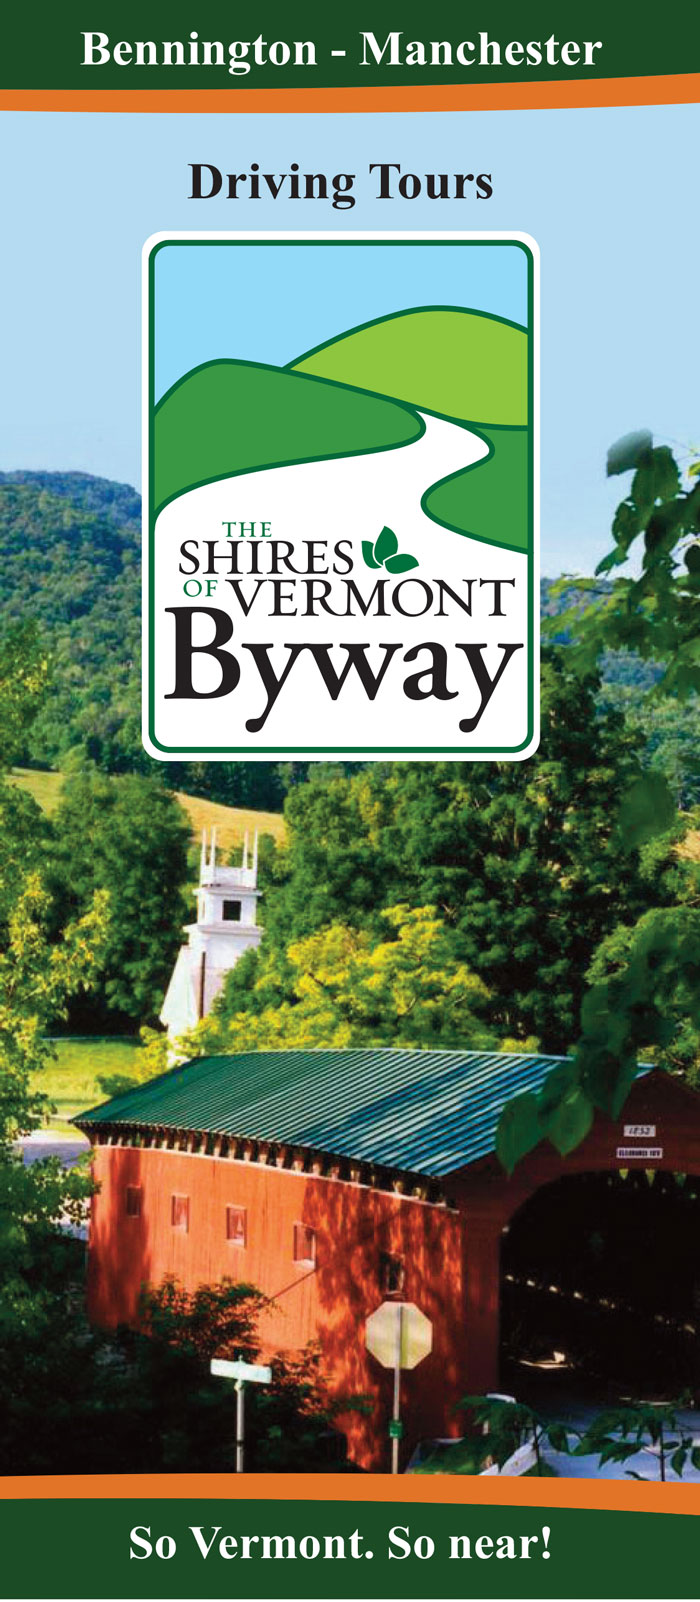 The Shires of Vermont Byway